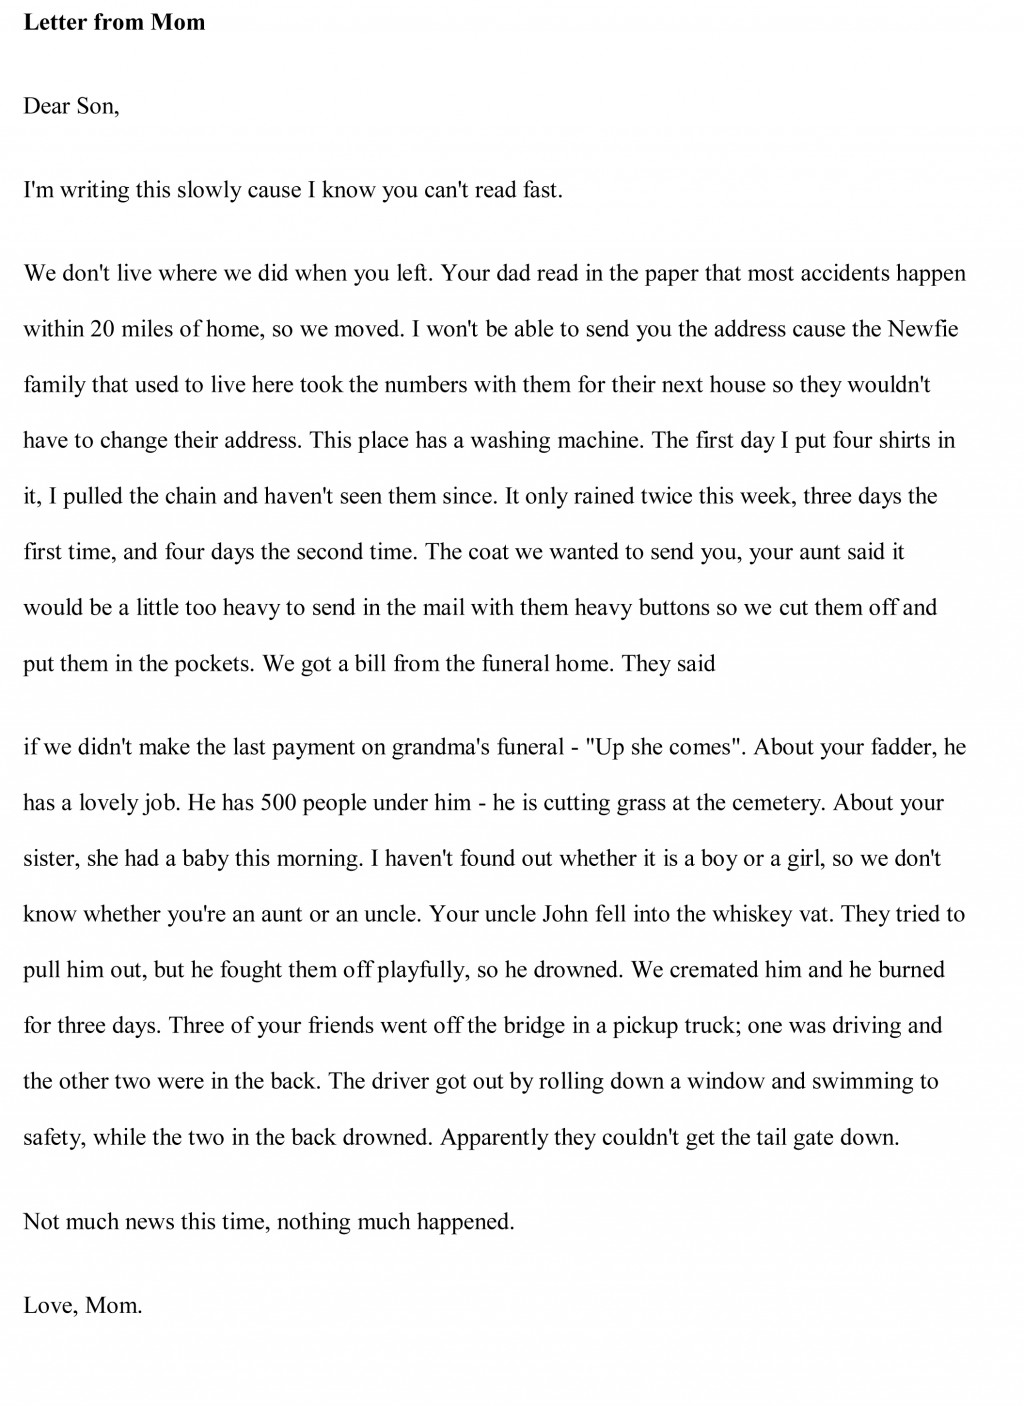 003 Essay Example Funny Essays Free Stupendous Topics For High School Students About Large